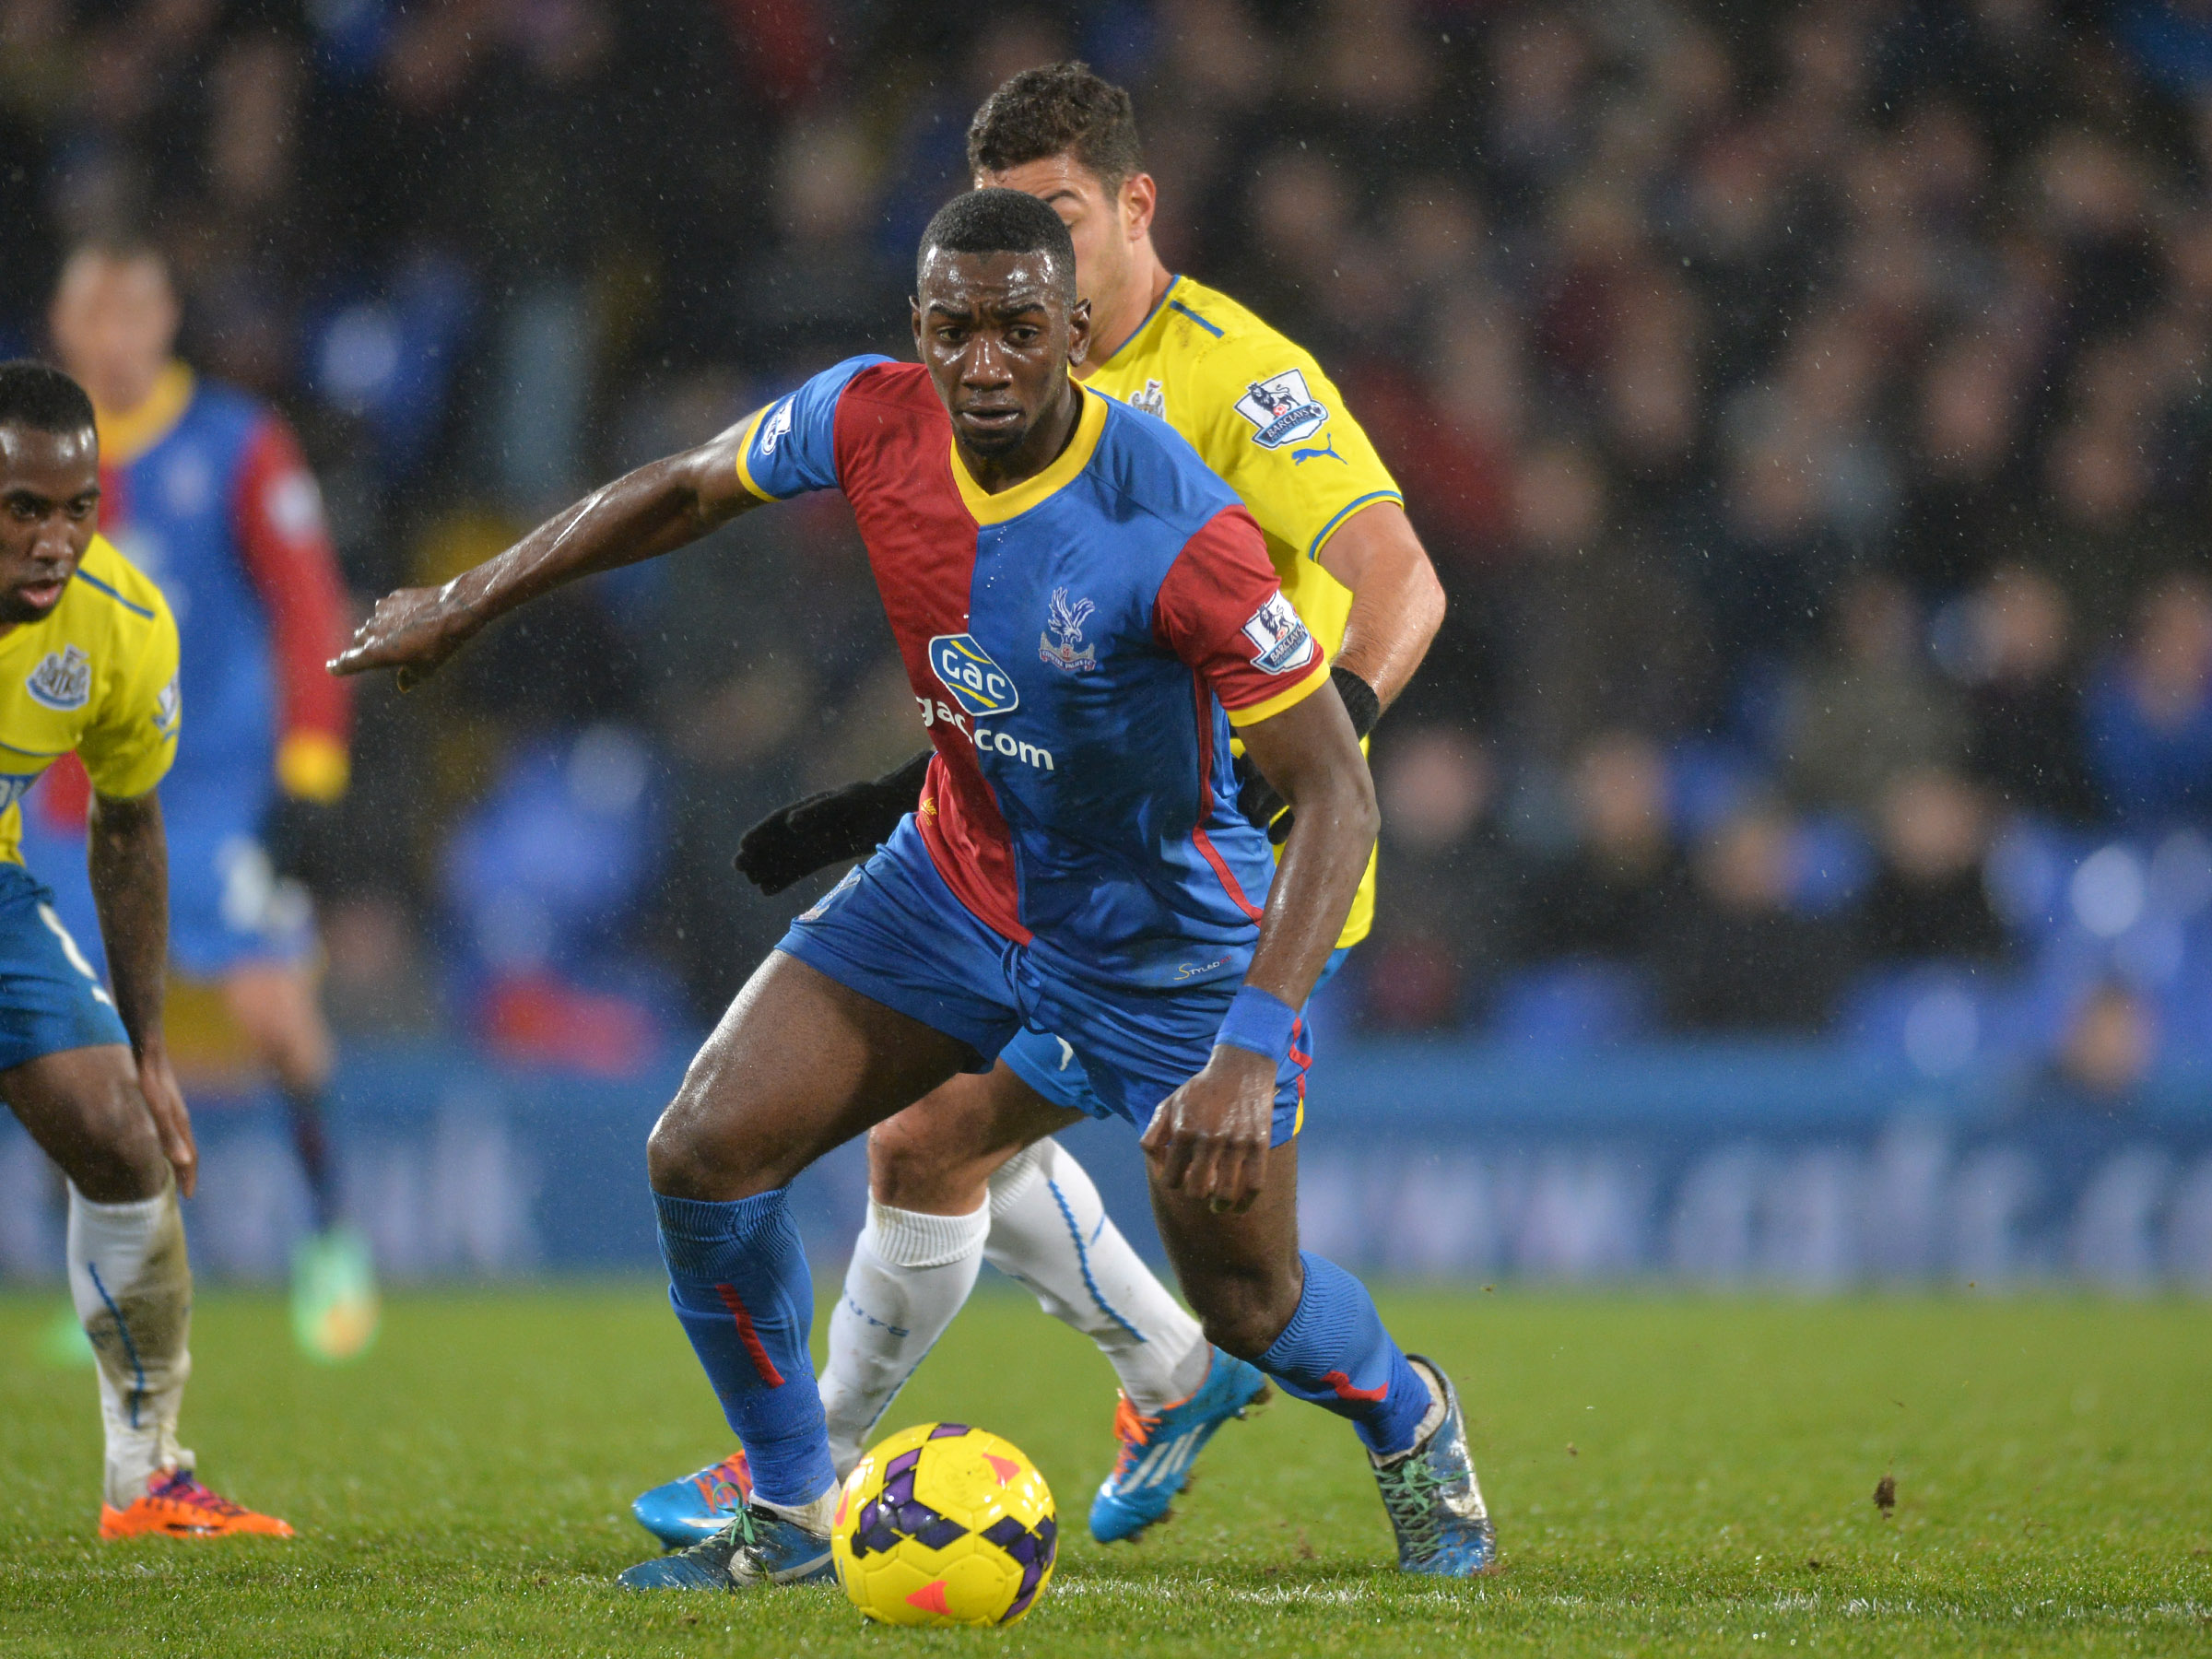 Yannick Bolasie hit the bar for the Eagles. Picture by Keith Gillard.